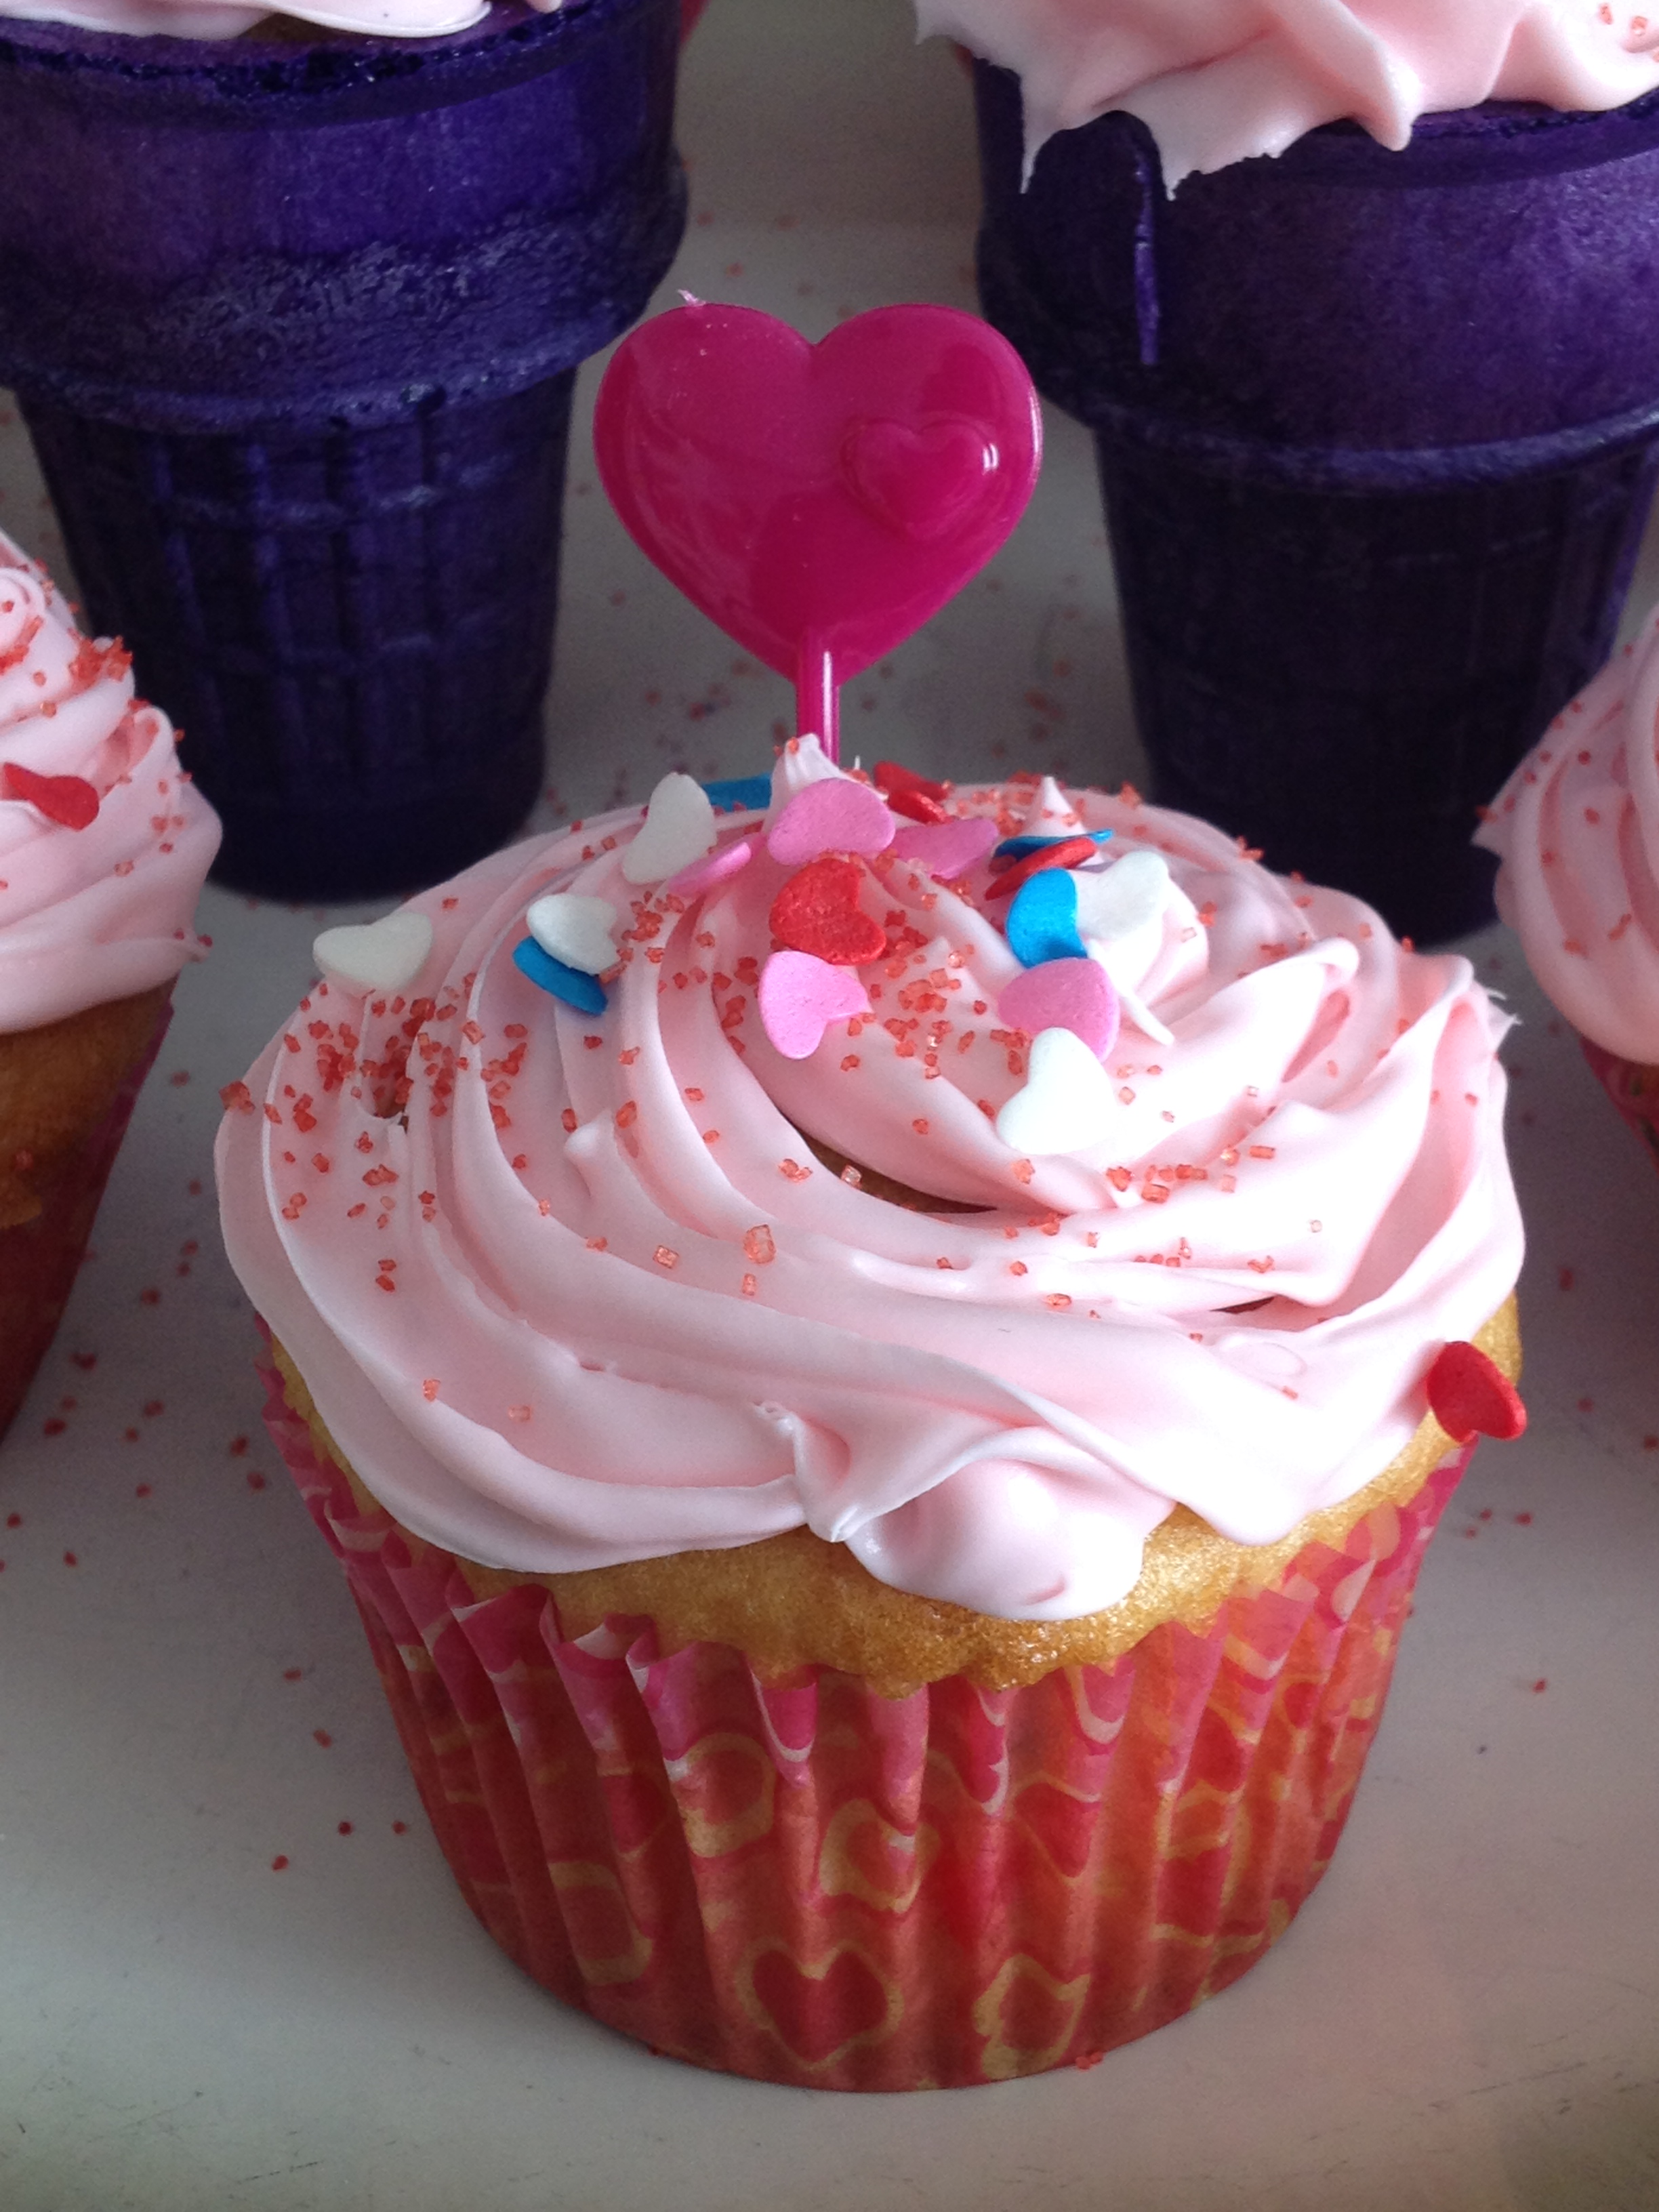 Cupcakes: The Sweet Treat We Love